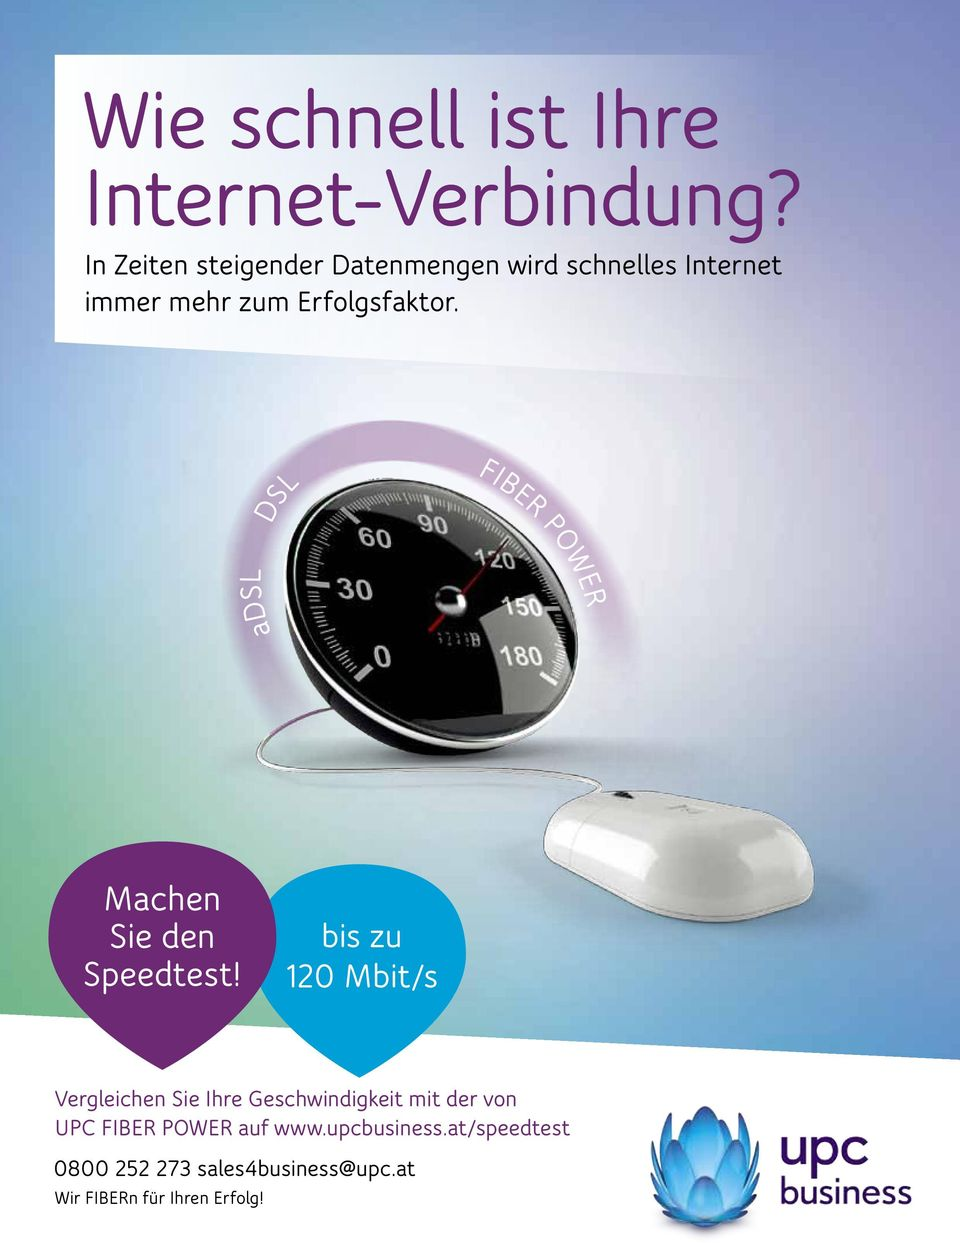 DSL FIBER POWER adsl Machen Sie den Speedtest!